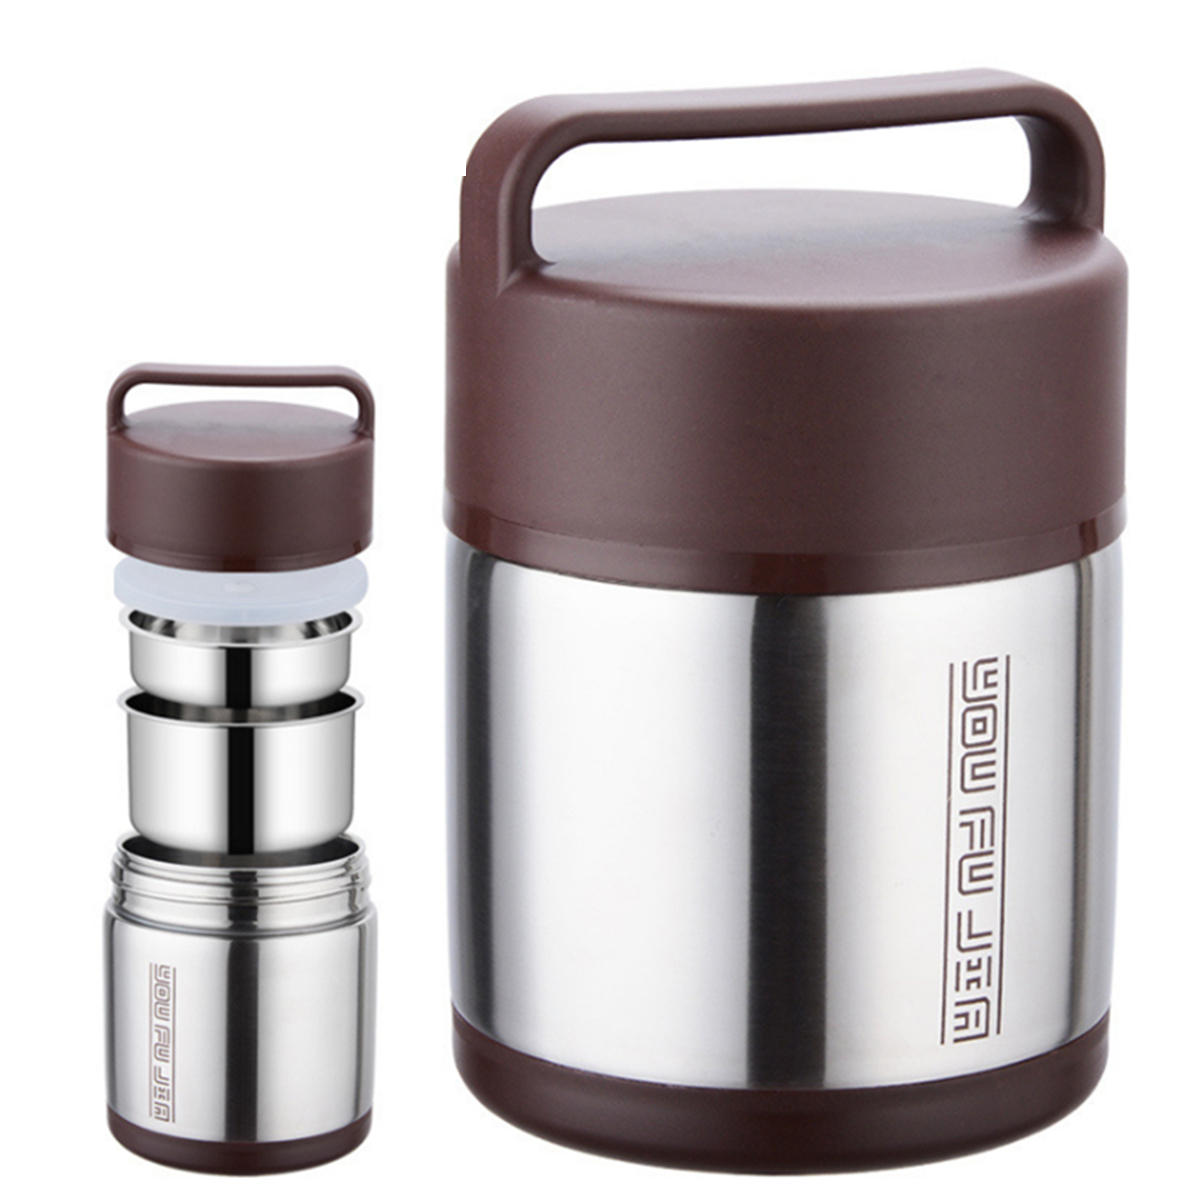 Vacuum Insulated Lunch Box Stainless Steel Jar Hot Cold